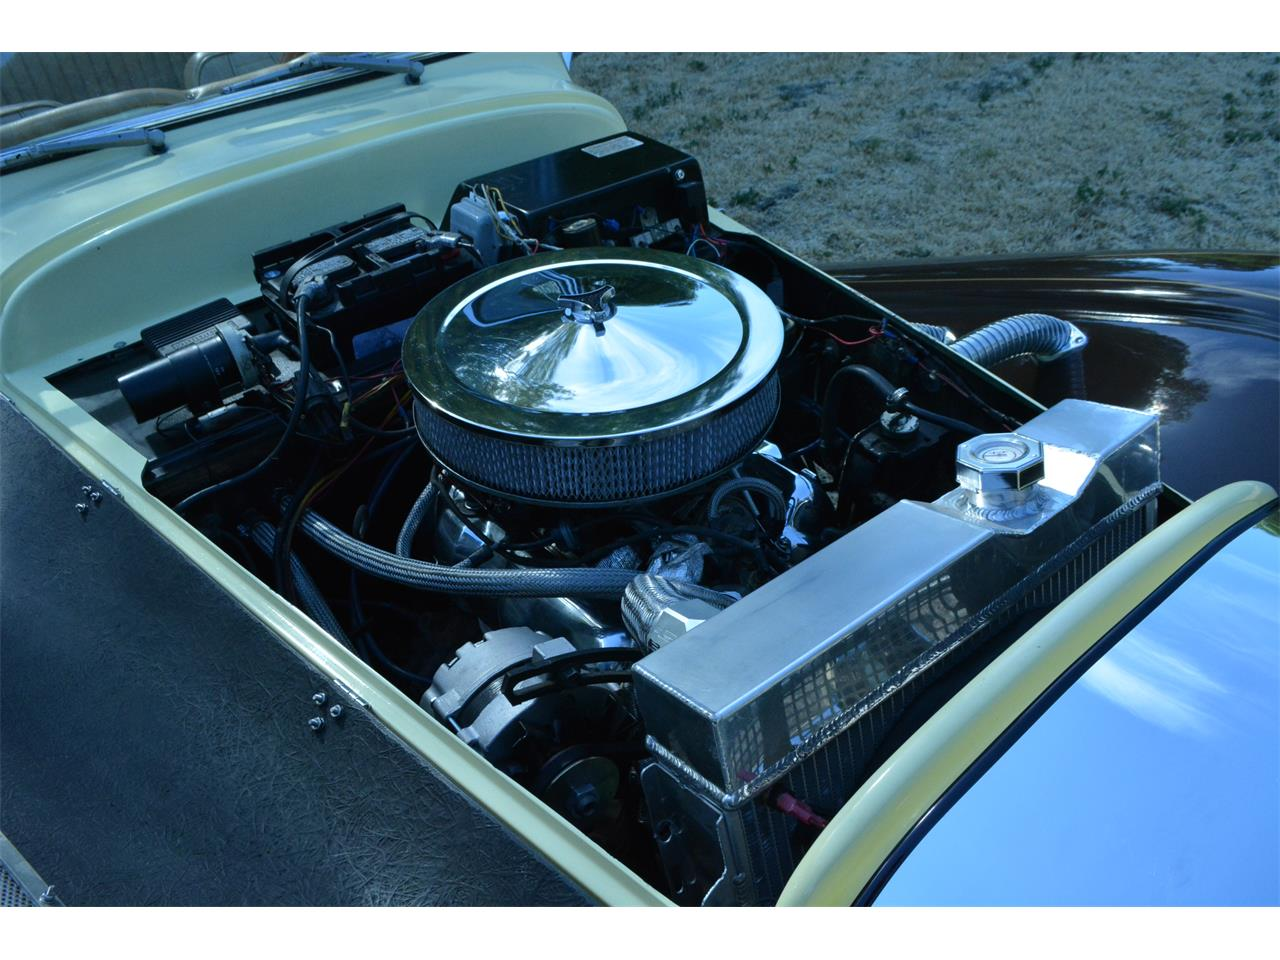 Large Picture of '29 SSK Replica - $10,000.00 Offered by Robz Ragz - LAJ0